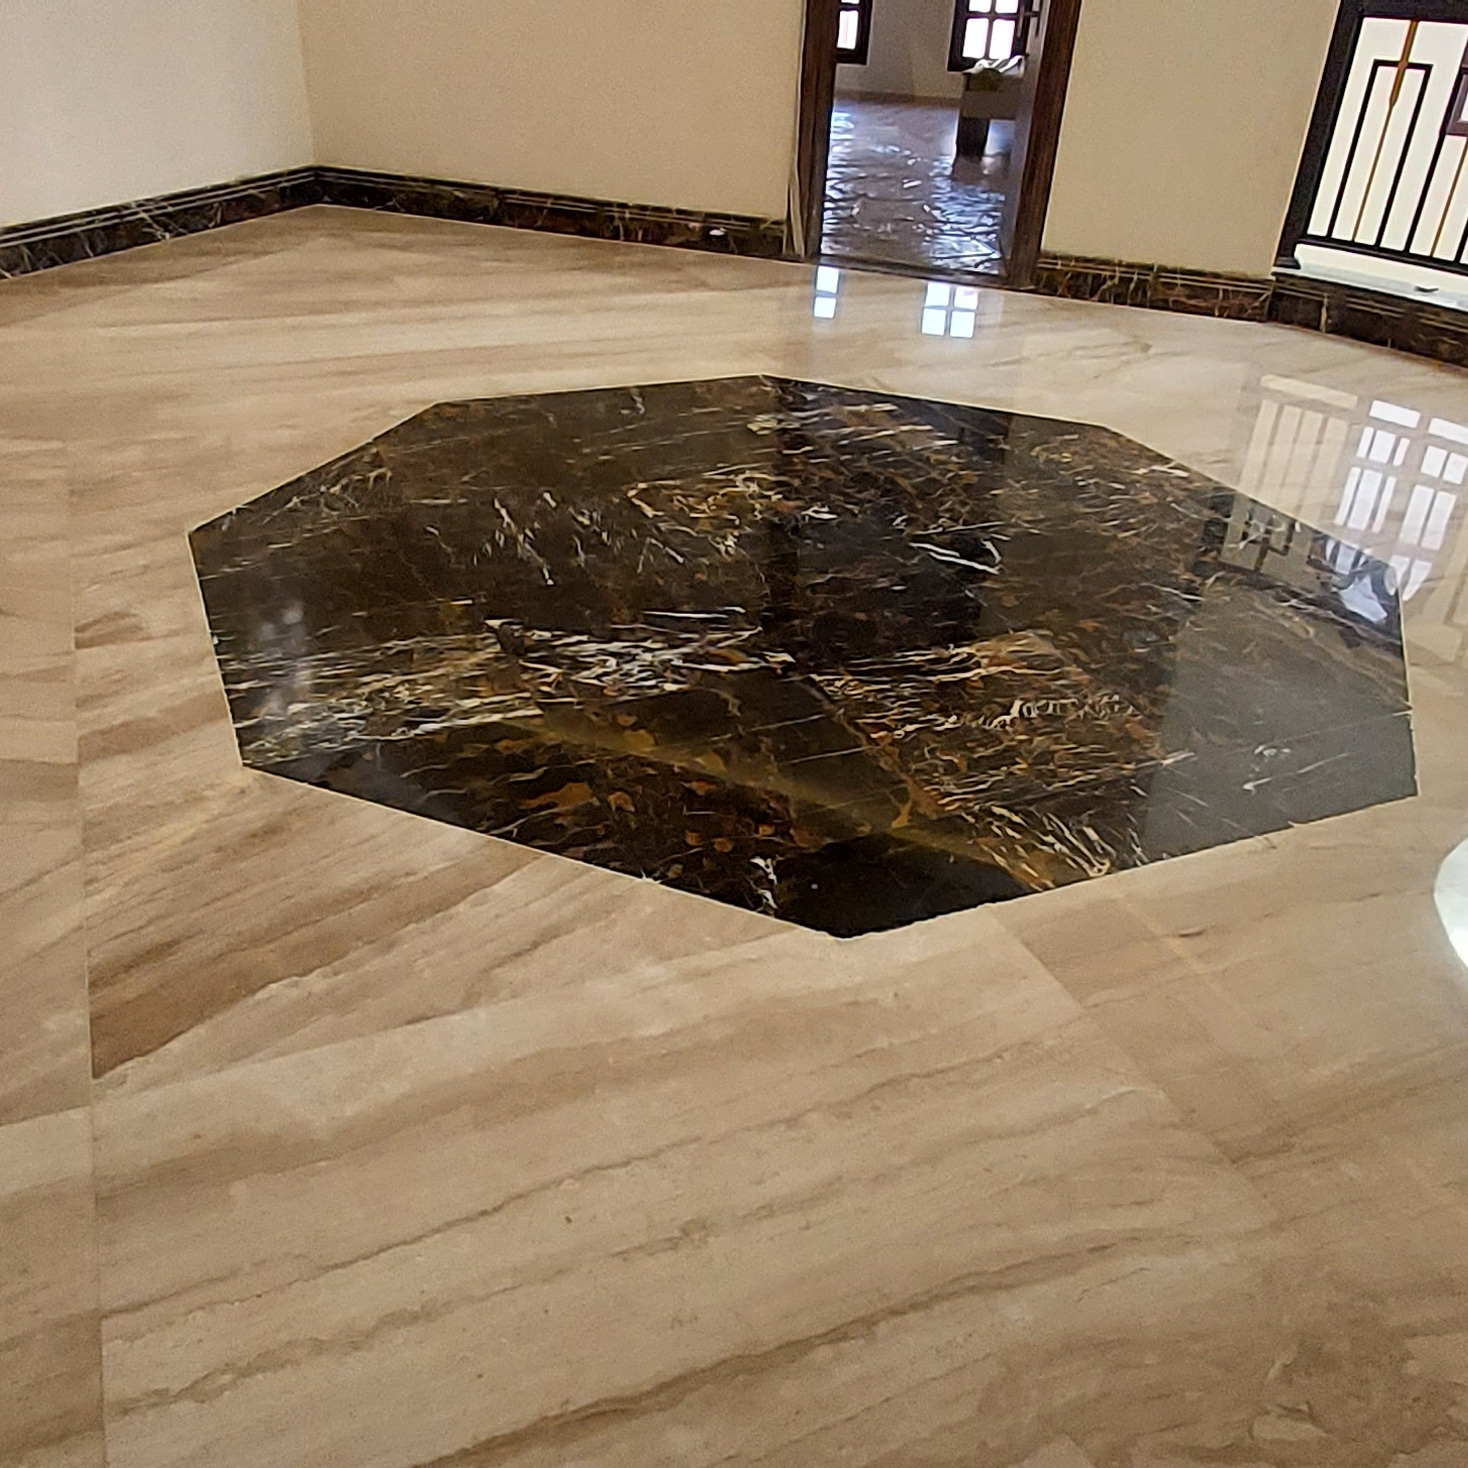 Marble and Granite Polishing and Cleaning- Please